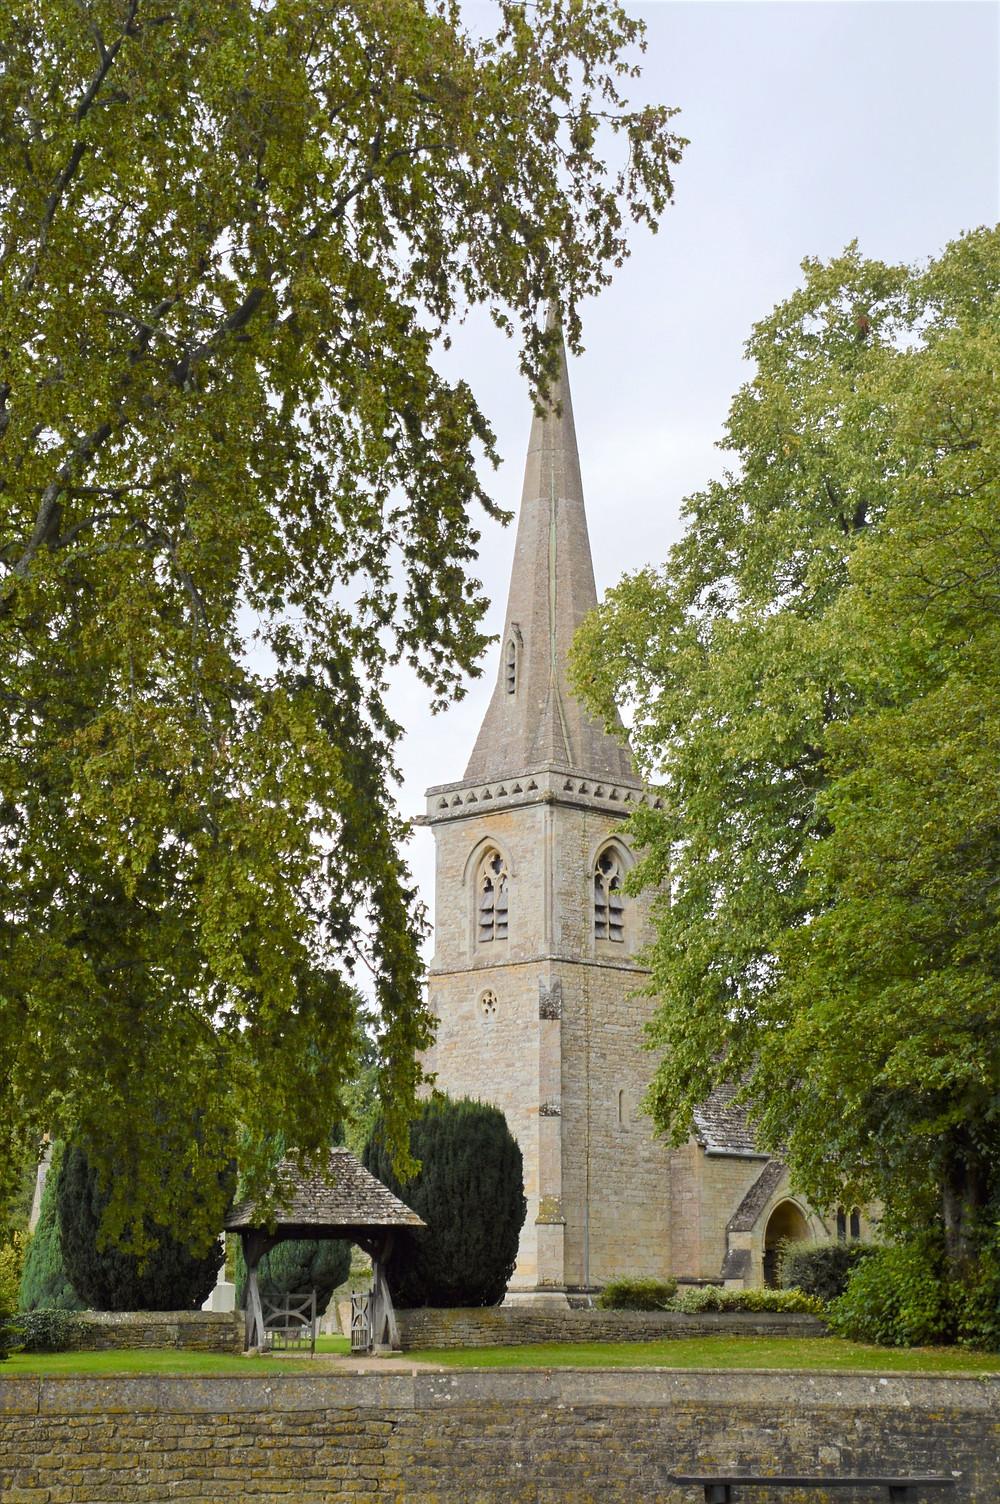 Church of St. Mary in Lower Slaughter of the Cotswolds